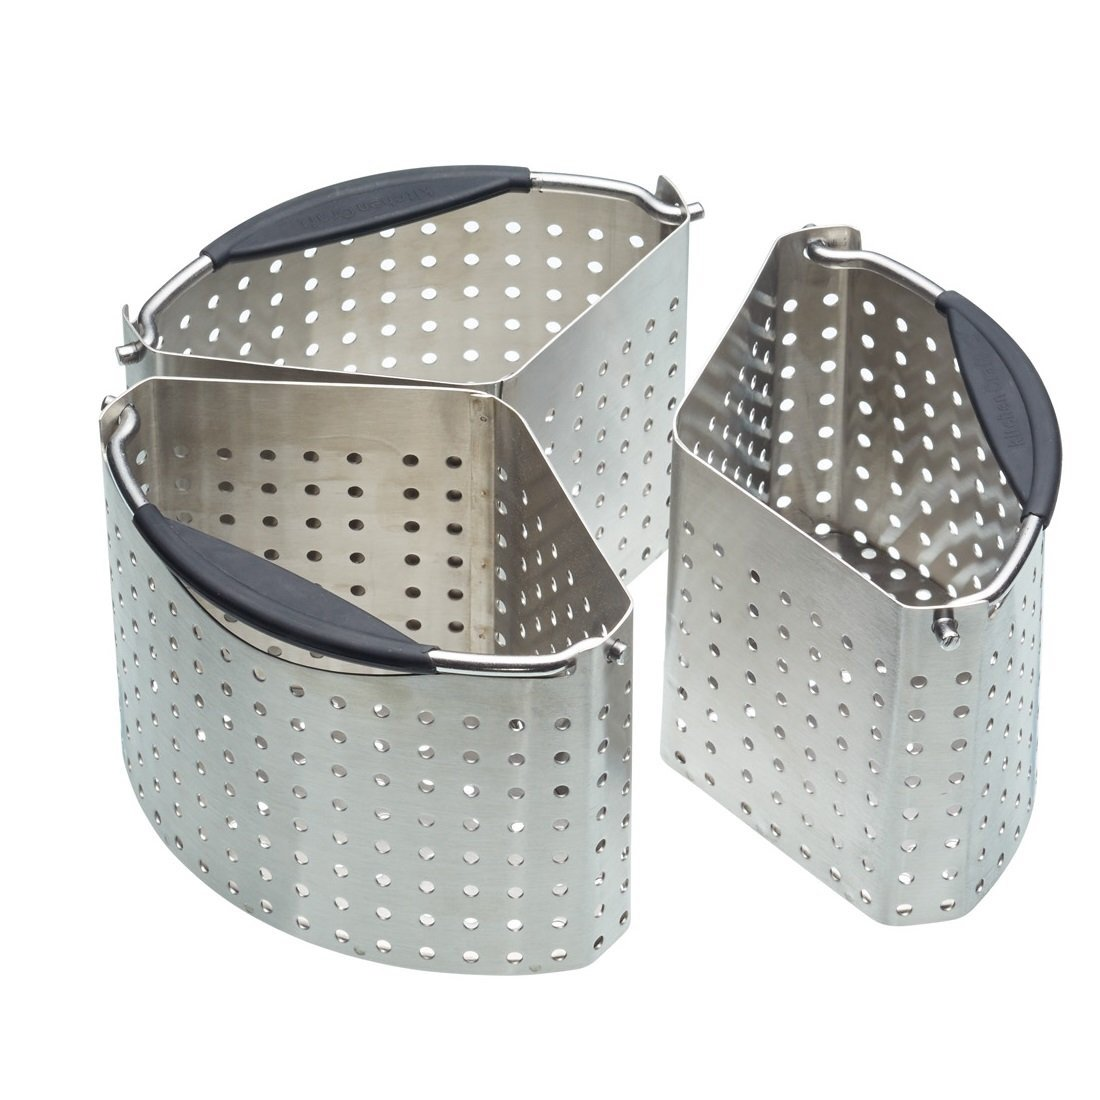 saucepan divider set of three wedge-shaped perforated steel containers which can sit together in a pan to hold ingredients separately wit in the same water/soup base